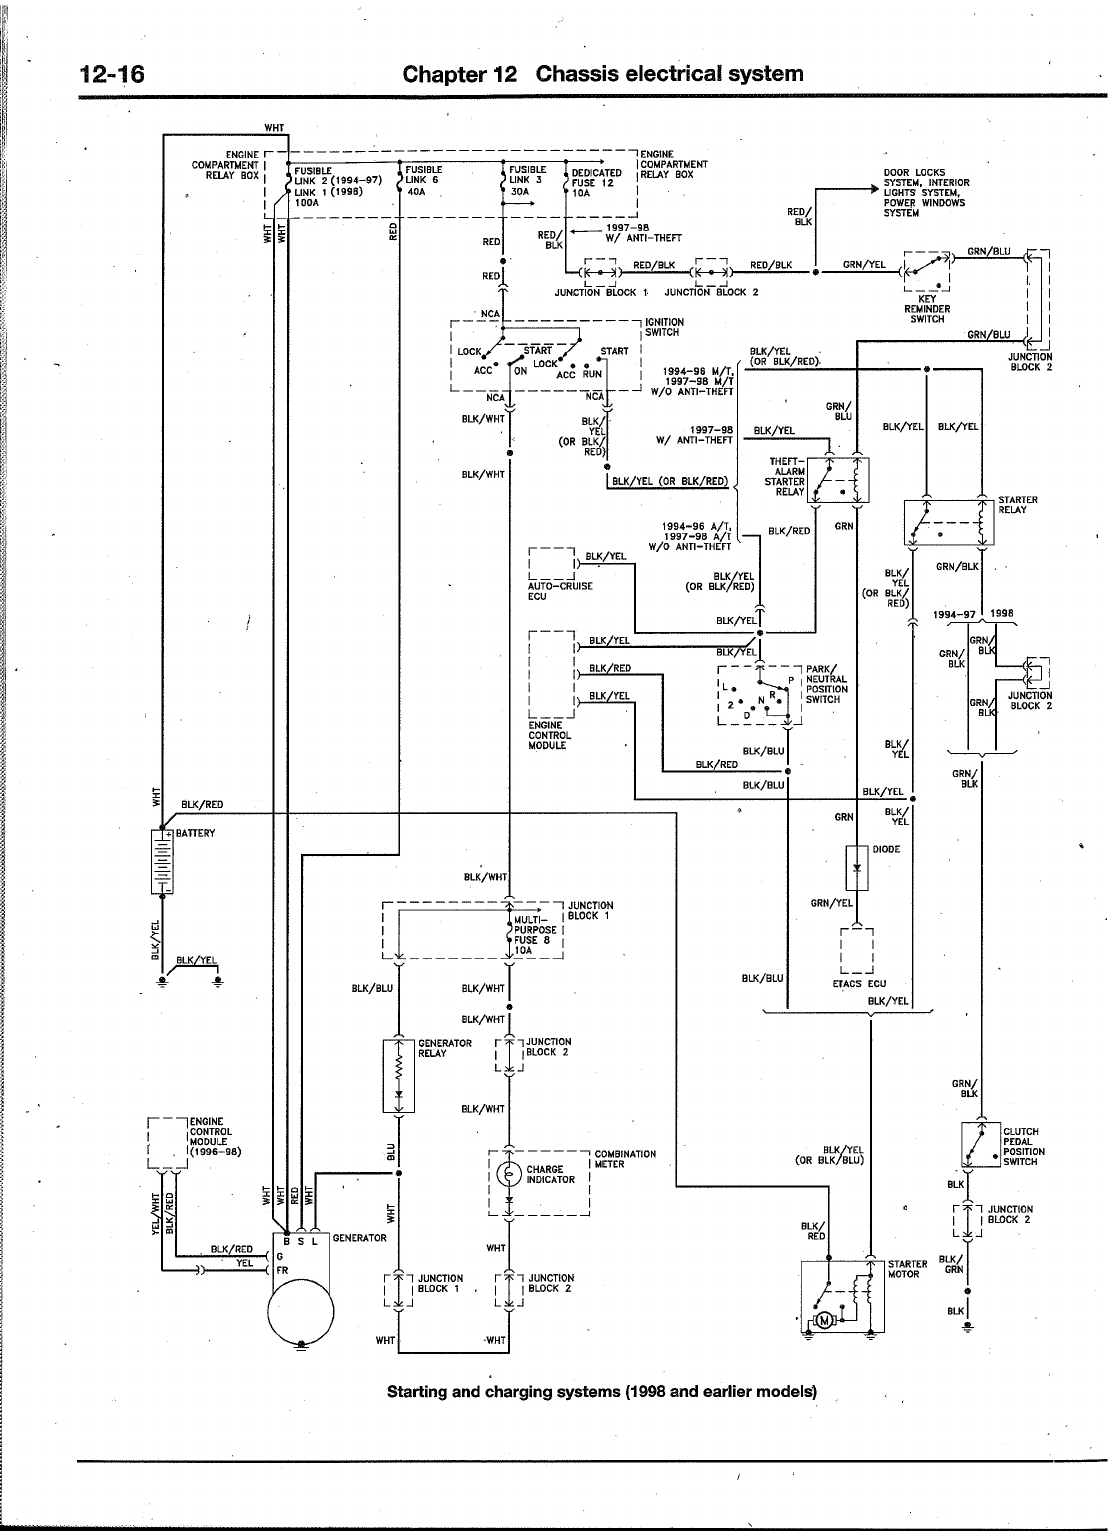 mitsubishi galant 1994 2003 misc document wiring diagram pdf rh manuals co Mitsubishi Alternator Wiring Diagram